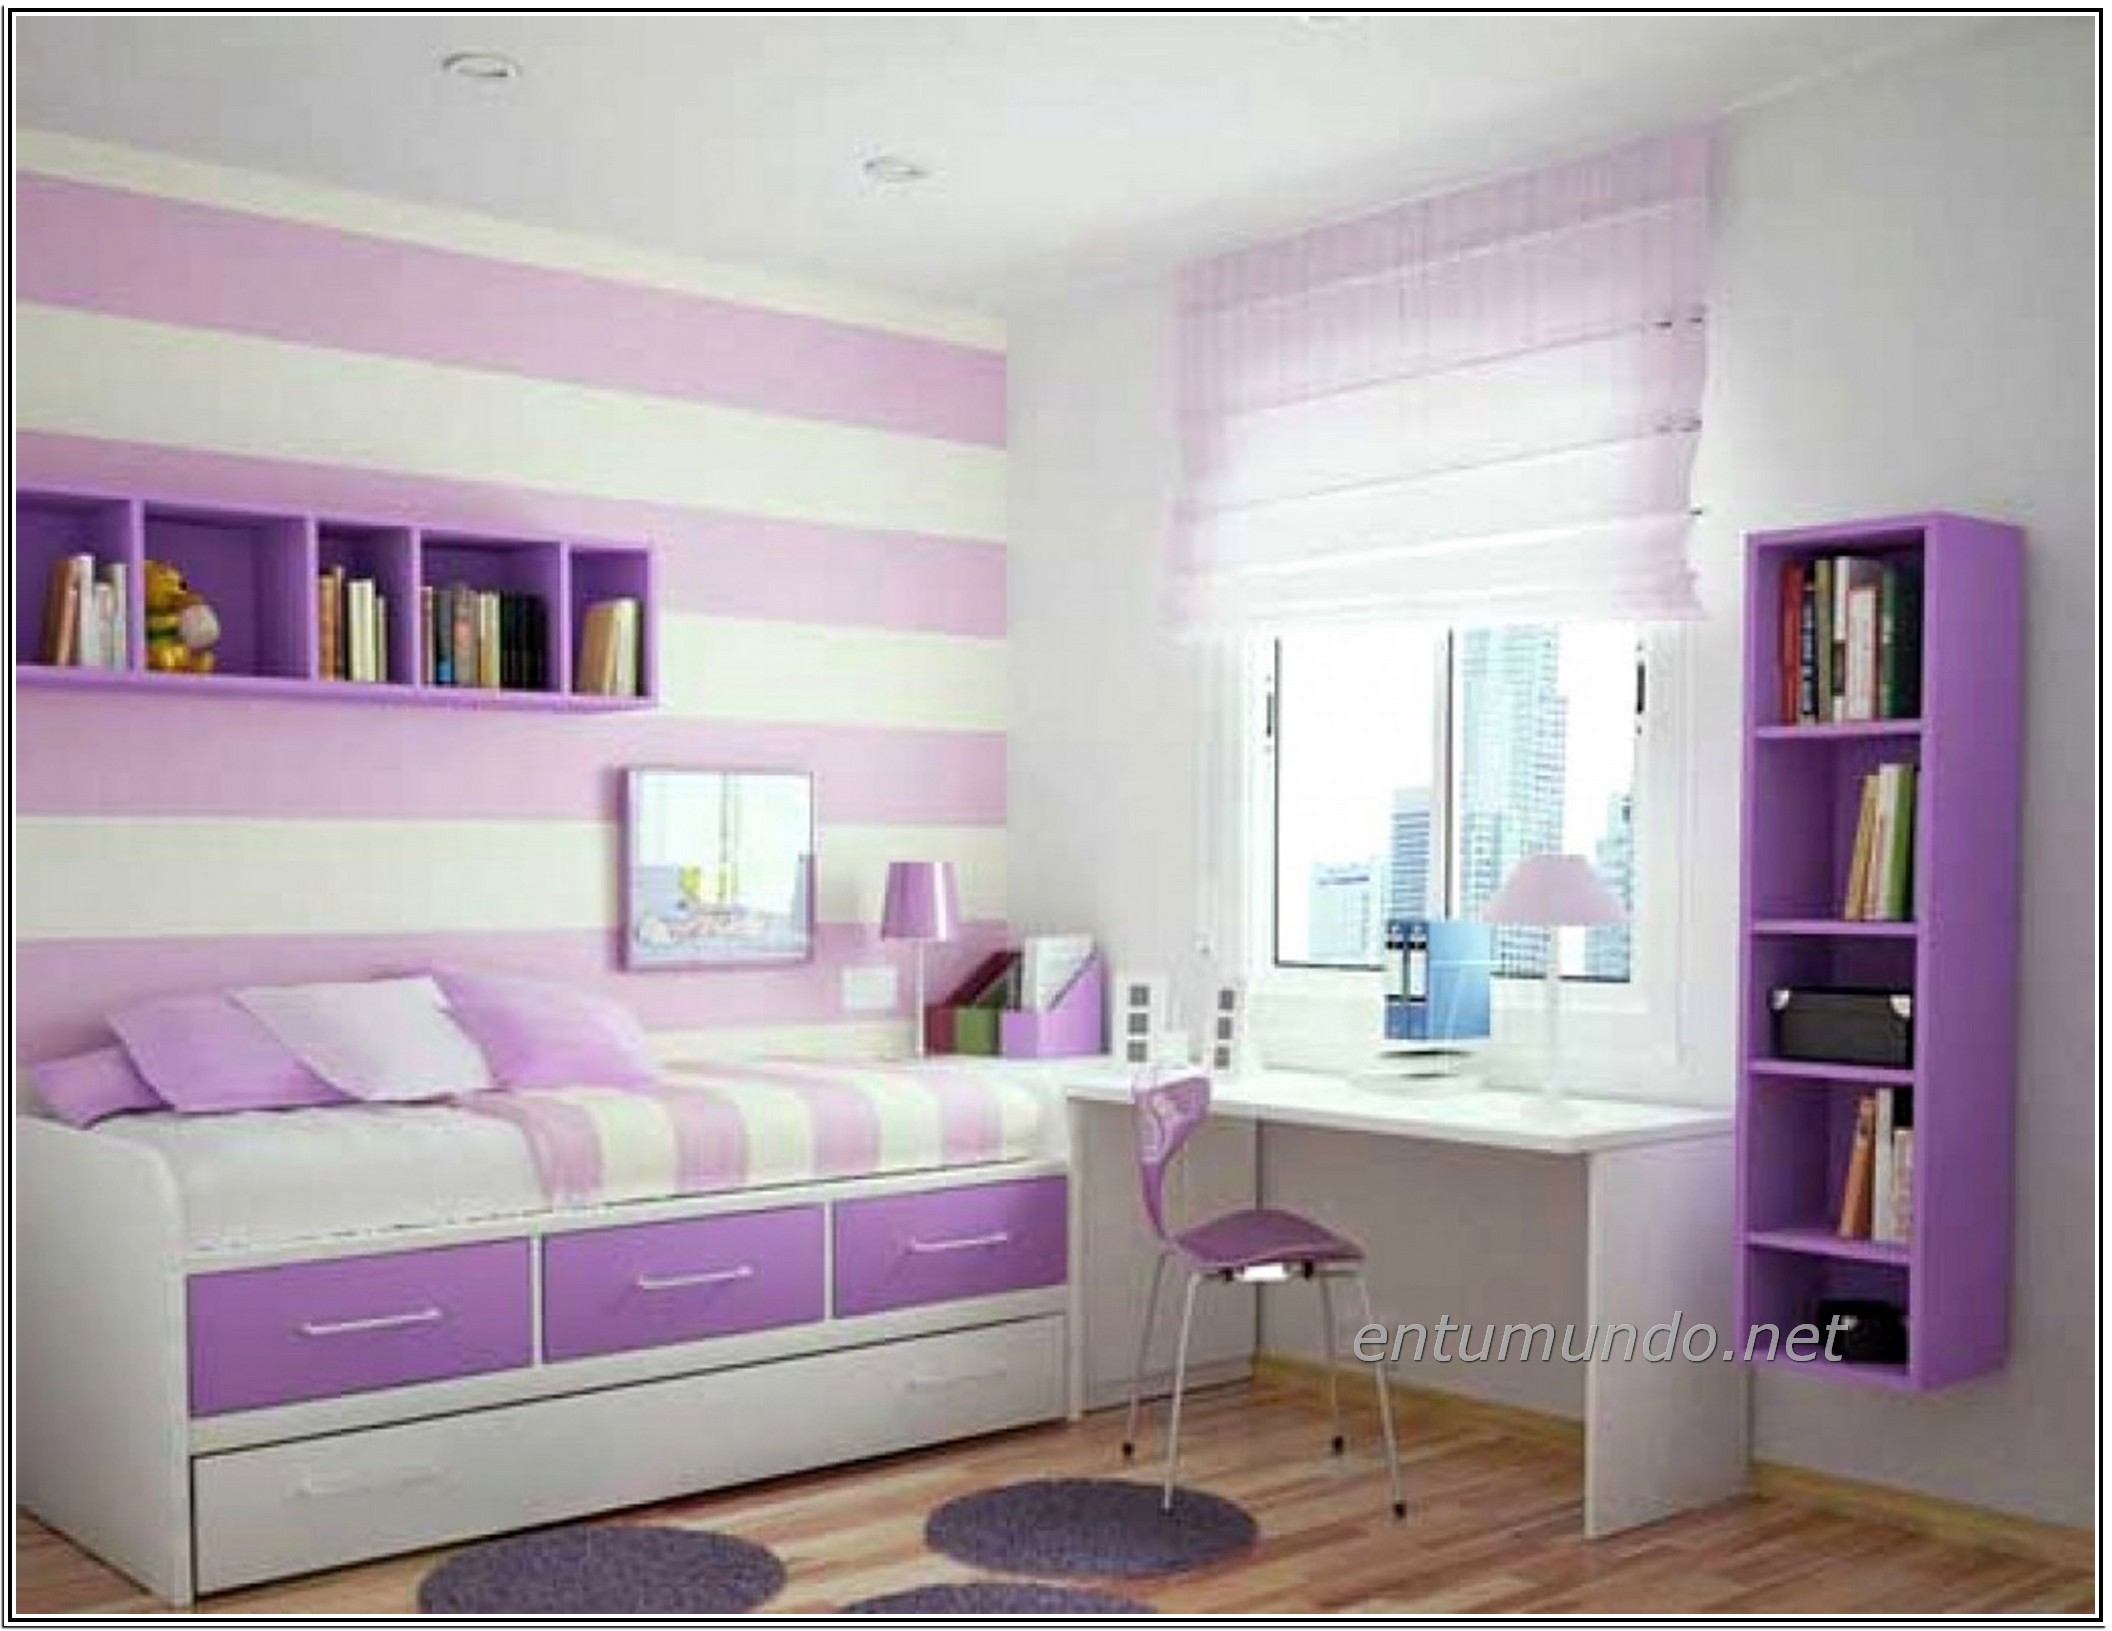 Cool Wallpaper for Girls Room (22+ images)